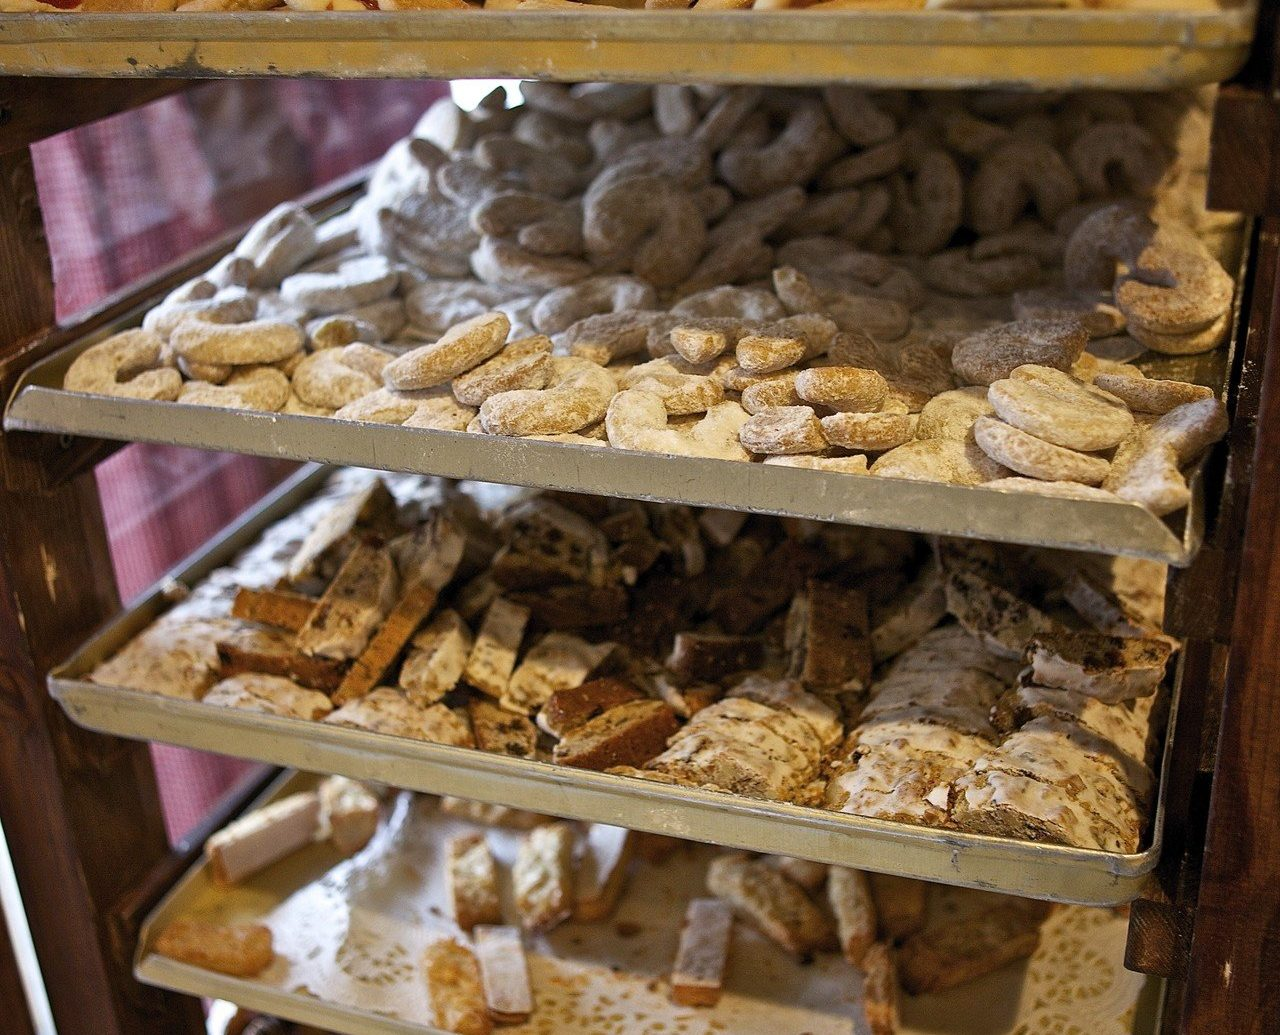 Eat europe food local eats Travel Tips bakery indoor dessert pâtisserie chocolate meal sweetness baking produce bunch different several Shop